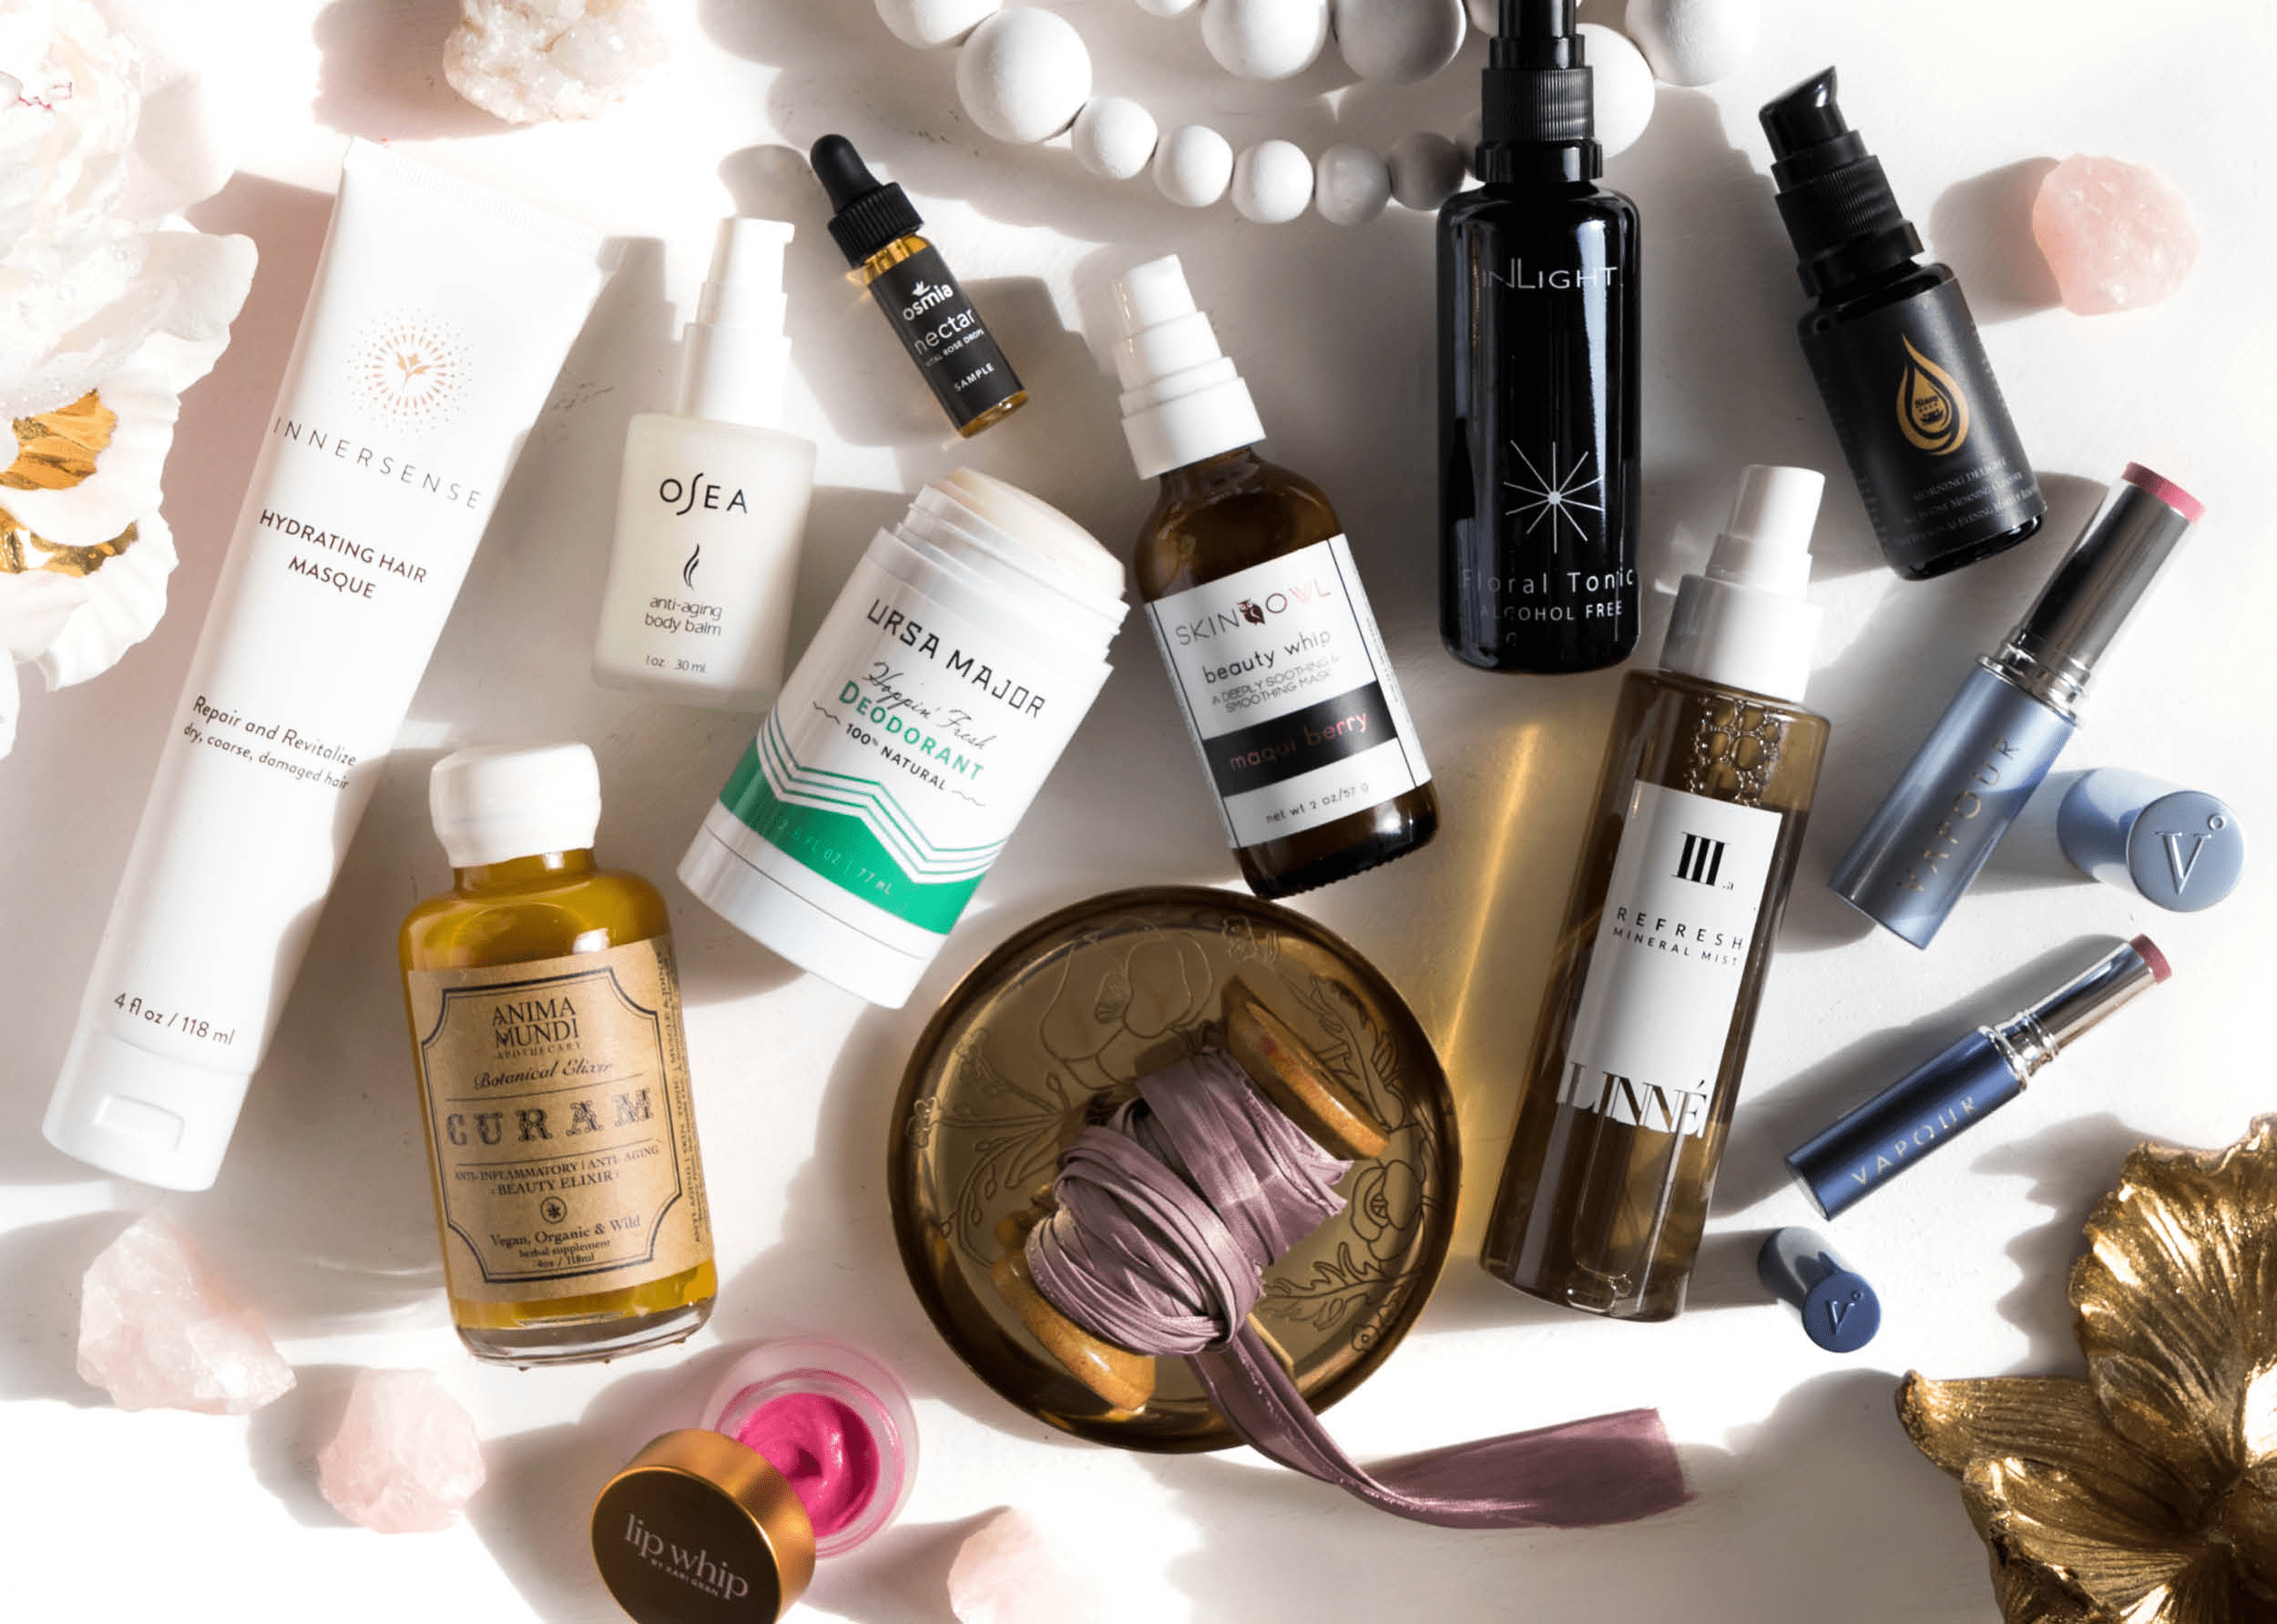 Beauty Heroes MEMBERS ONLY Cyber Monday 2018 Deal: Save 15% OFF + up to 3 Free Gifts with Purchase!